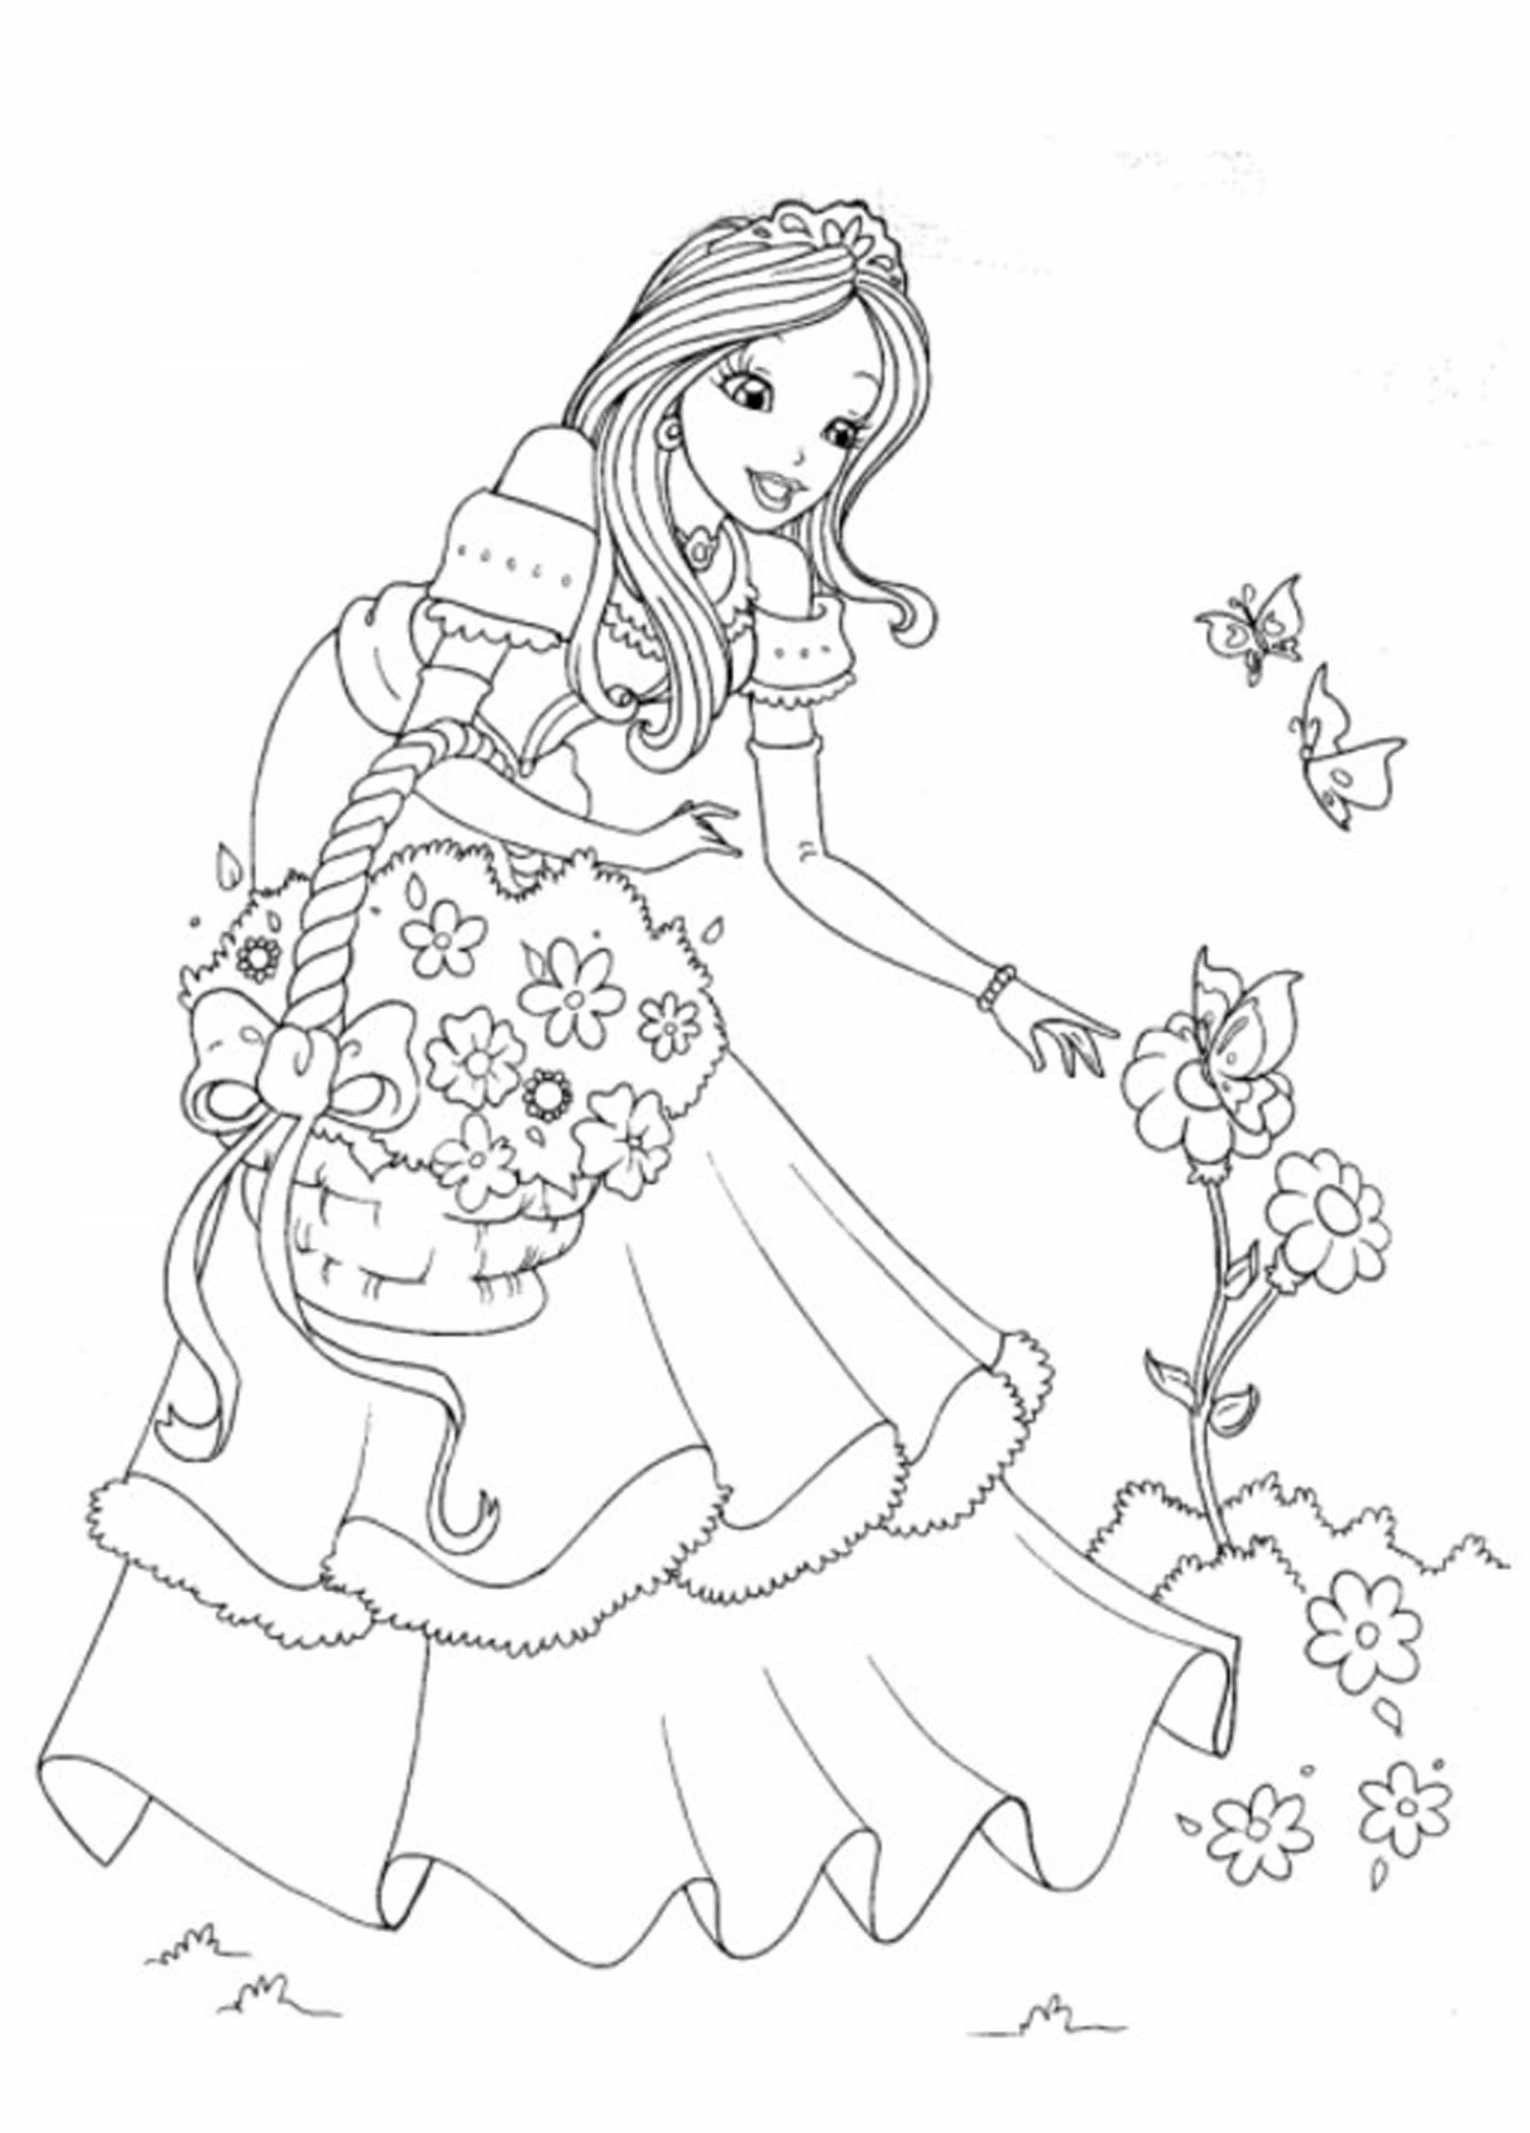 91 Top Princess Coloring Pages Download Download Free Images